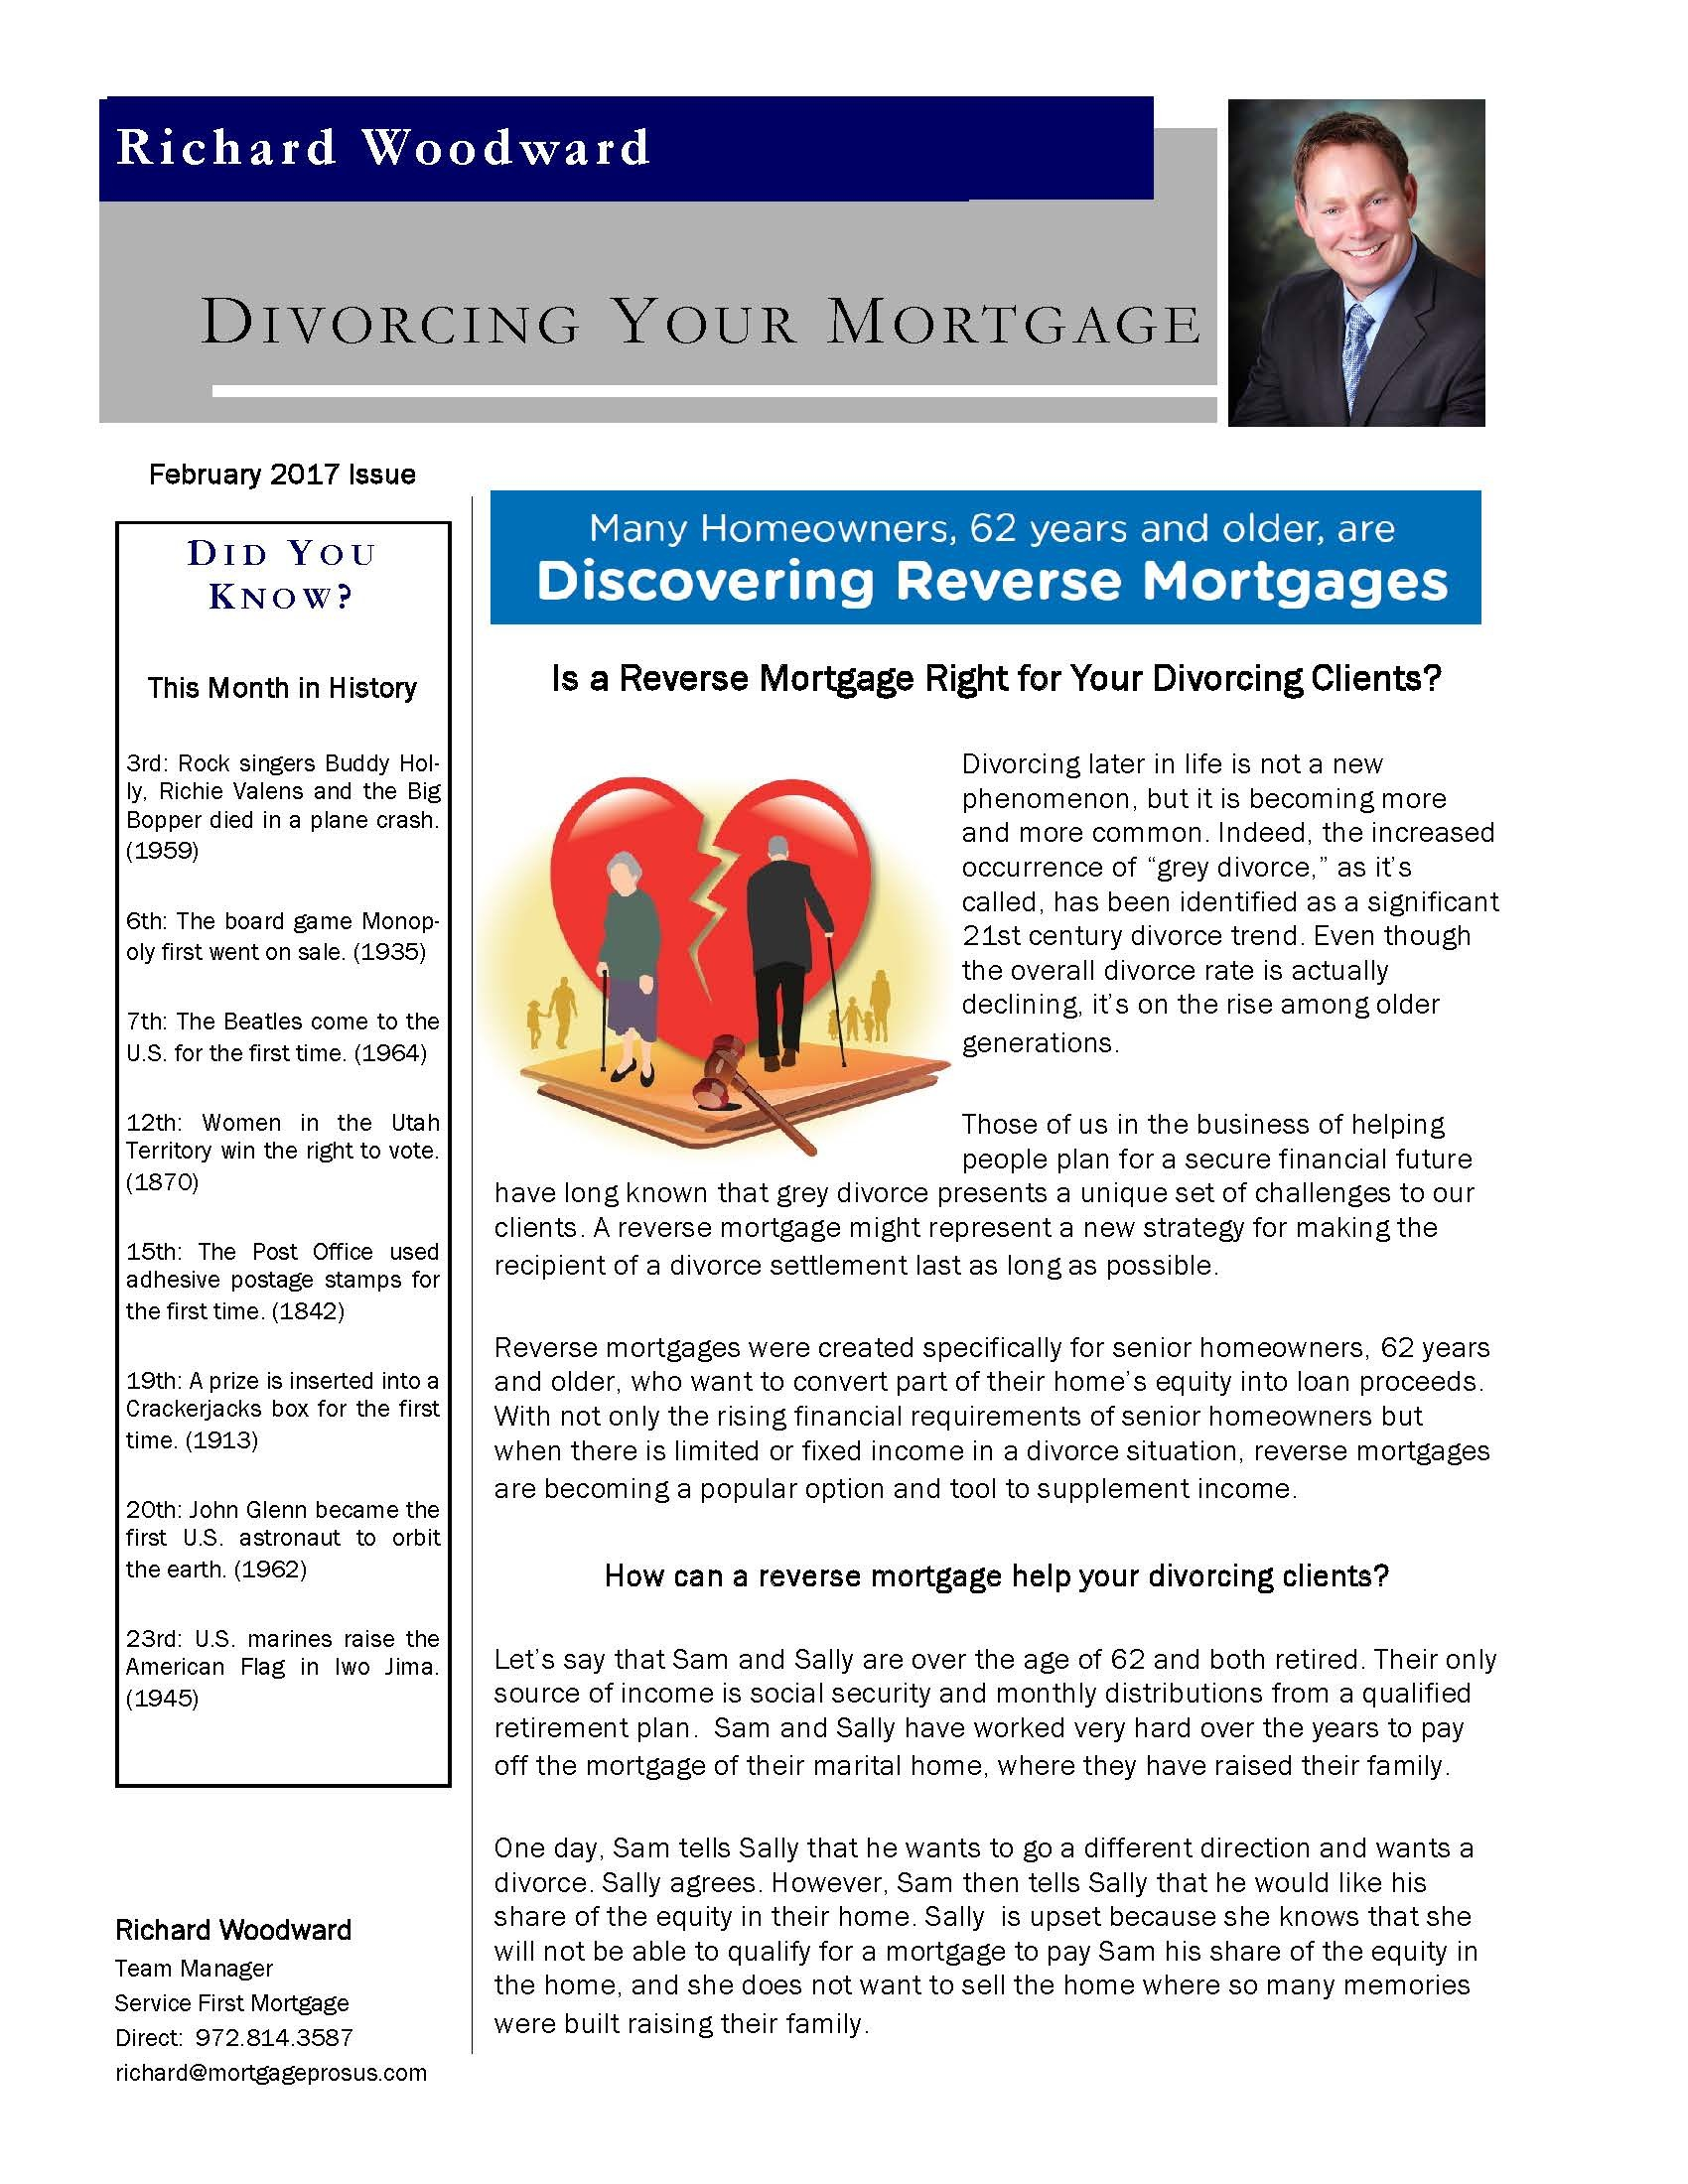 Divorcing your mortgage Feb 2017